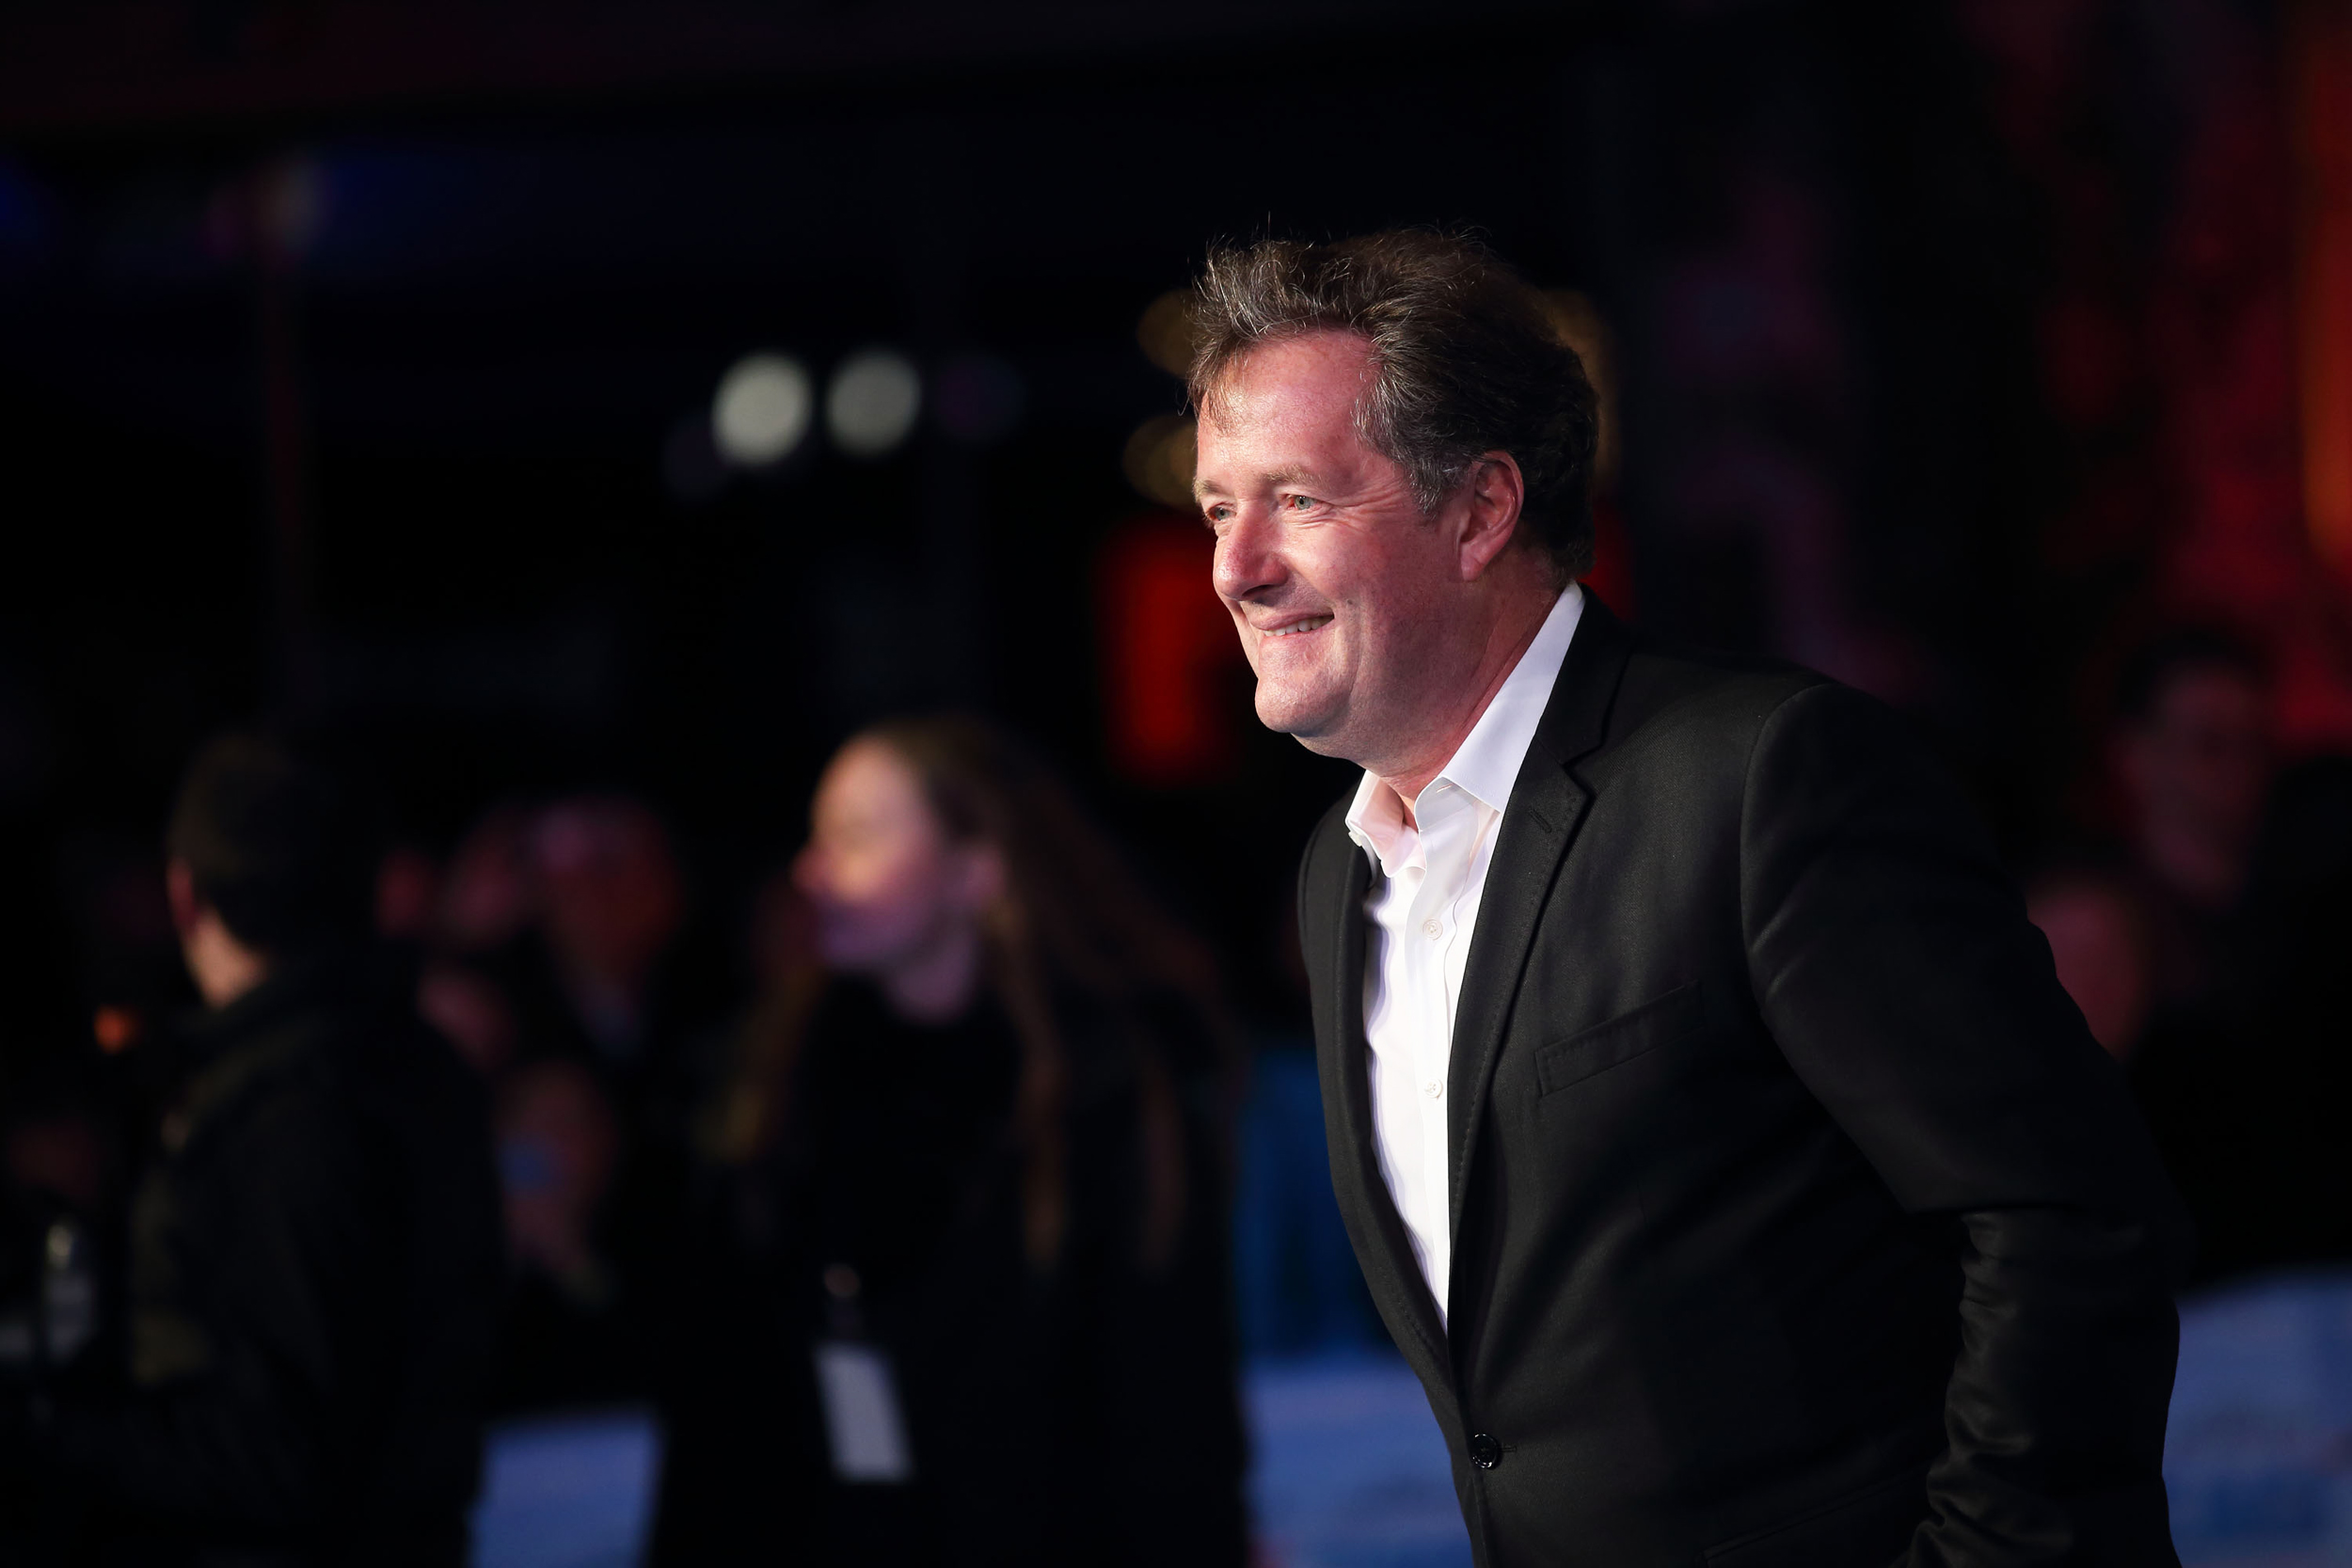 Piers Morgan cleared in probe over Meghan comments, celebrates news in series of tweets